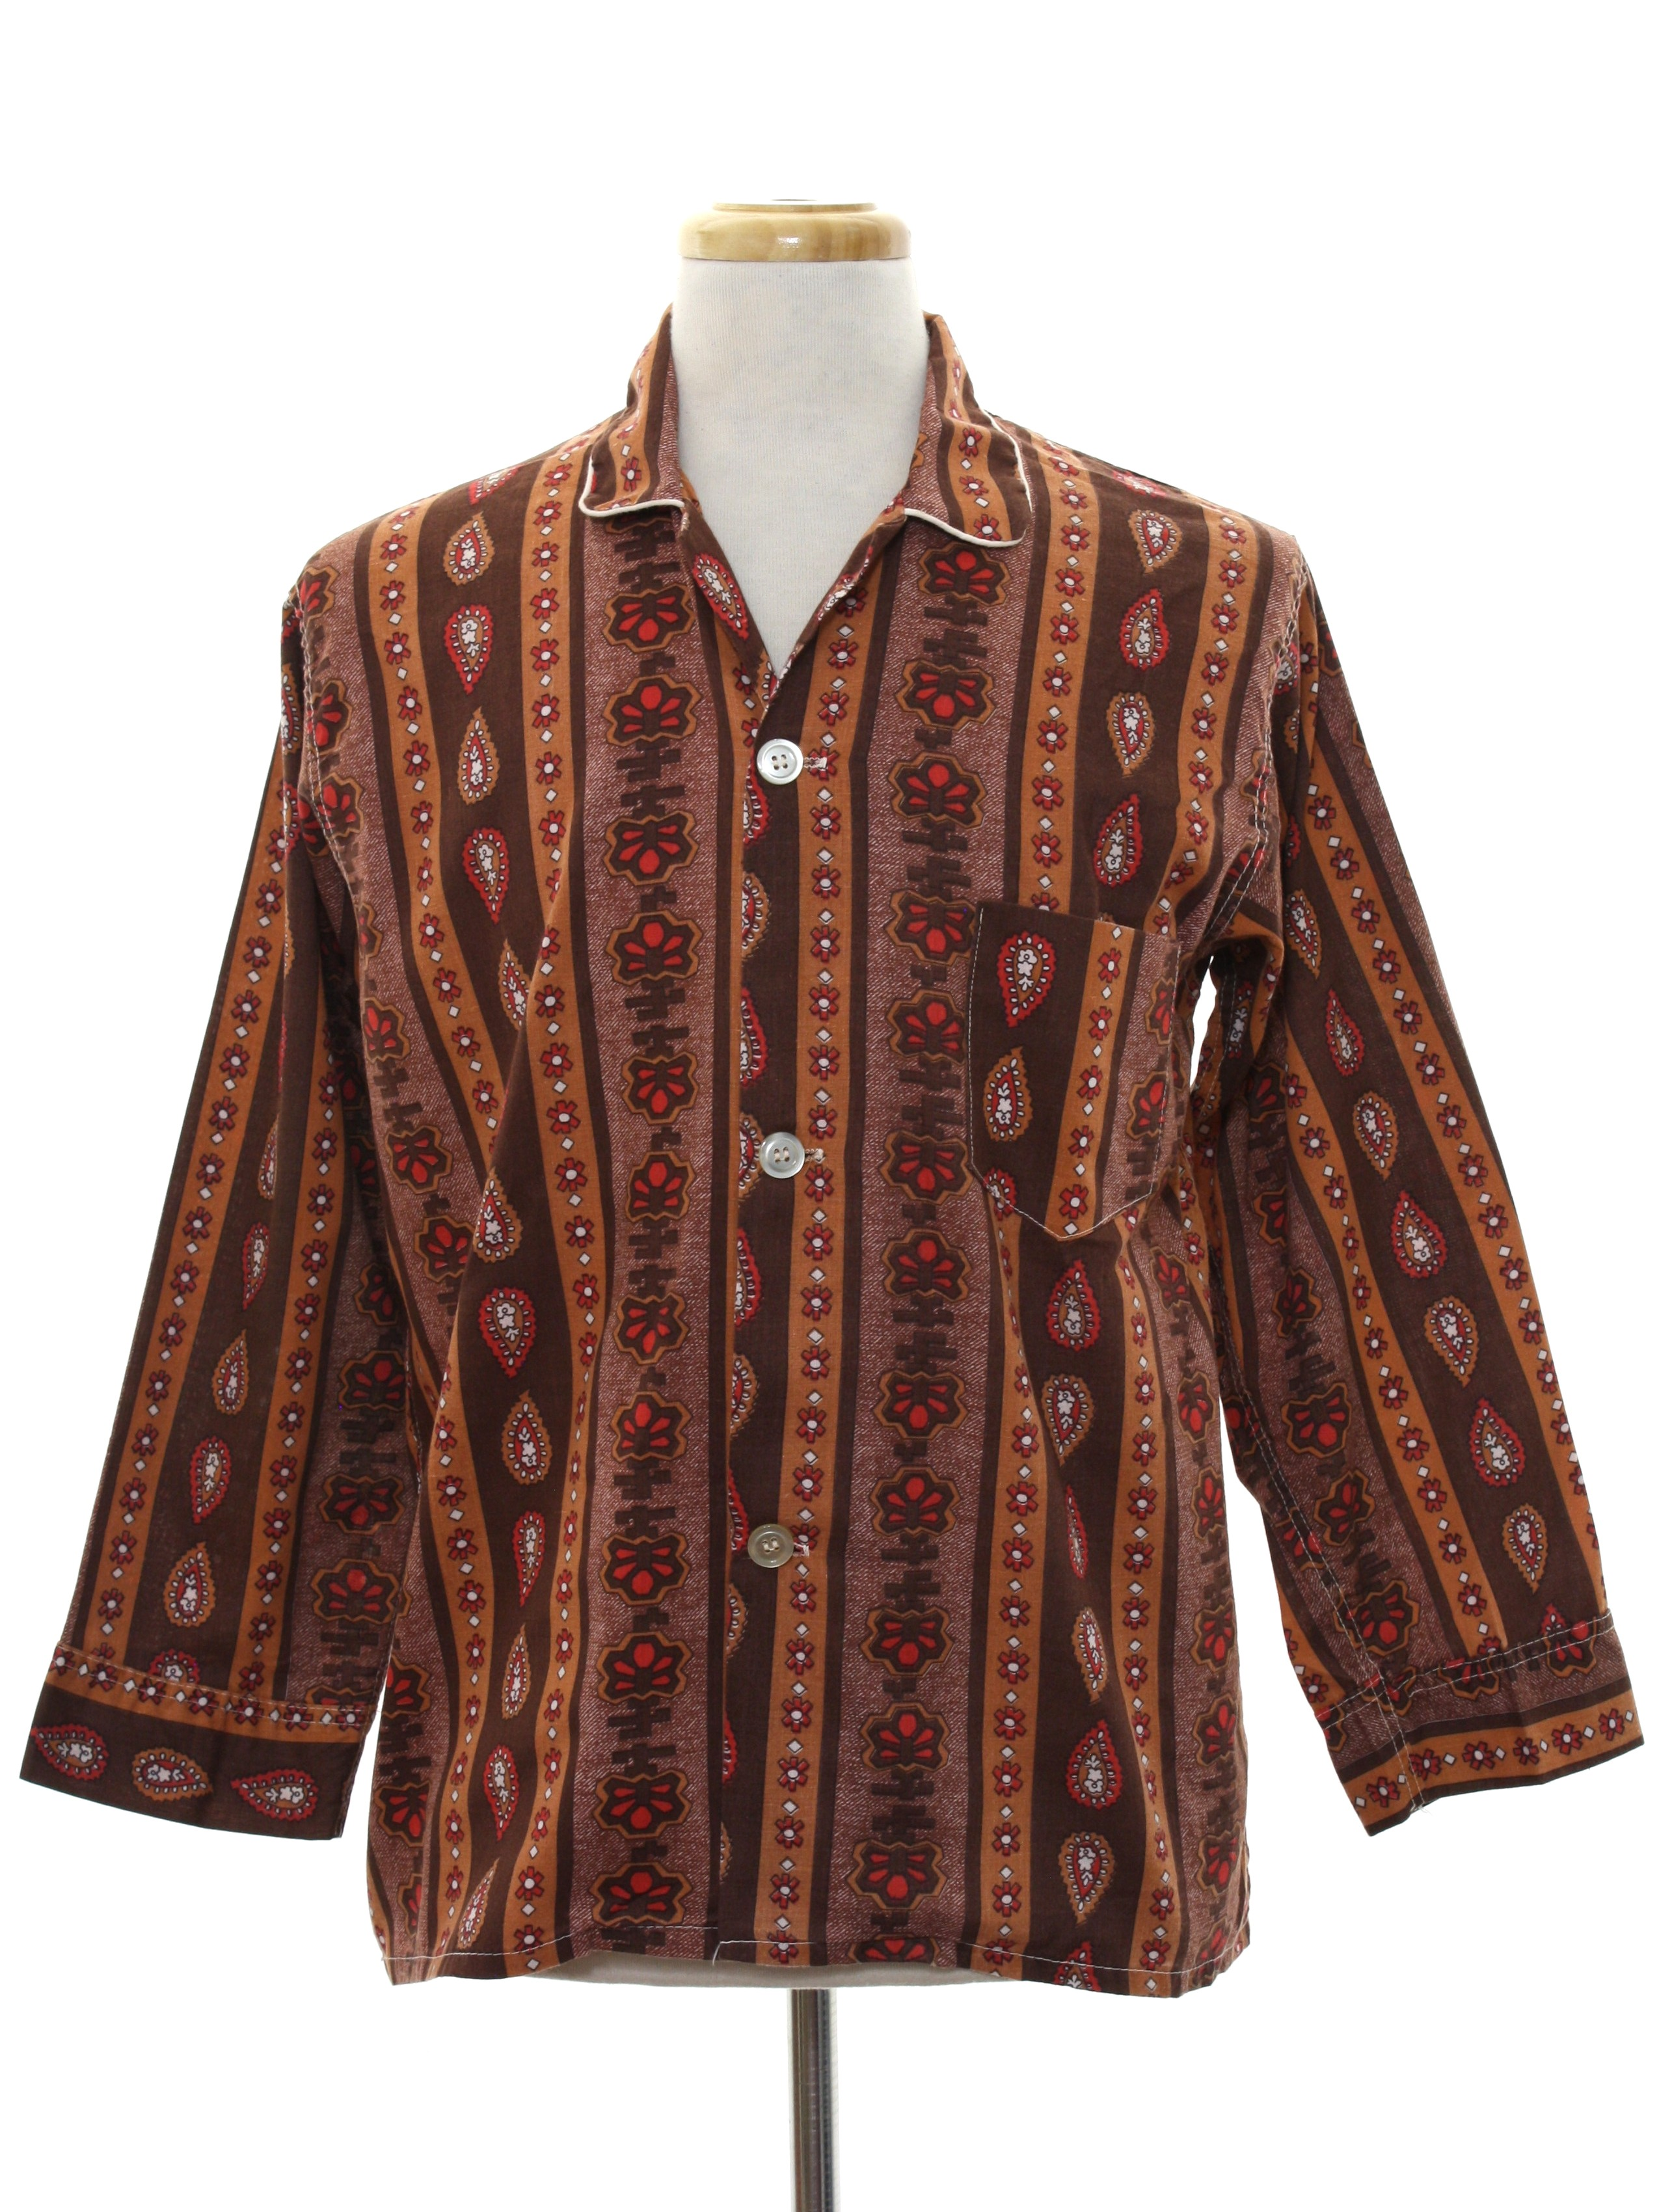 Vintage 1960 s Shirt  Early 60s -Lawson Permanent Press- Mens brown ... 93d44d9c5